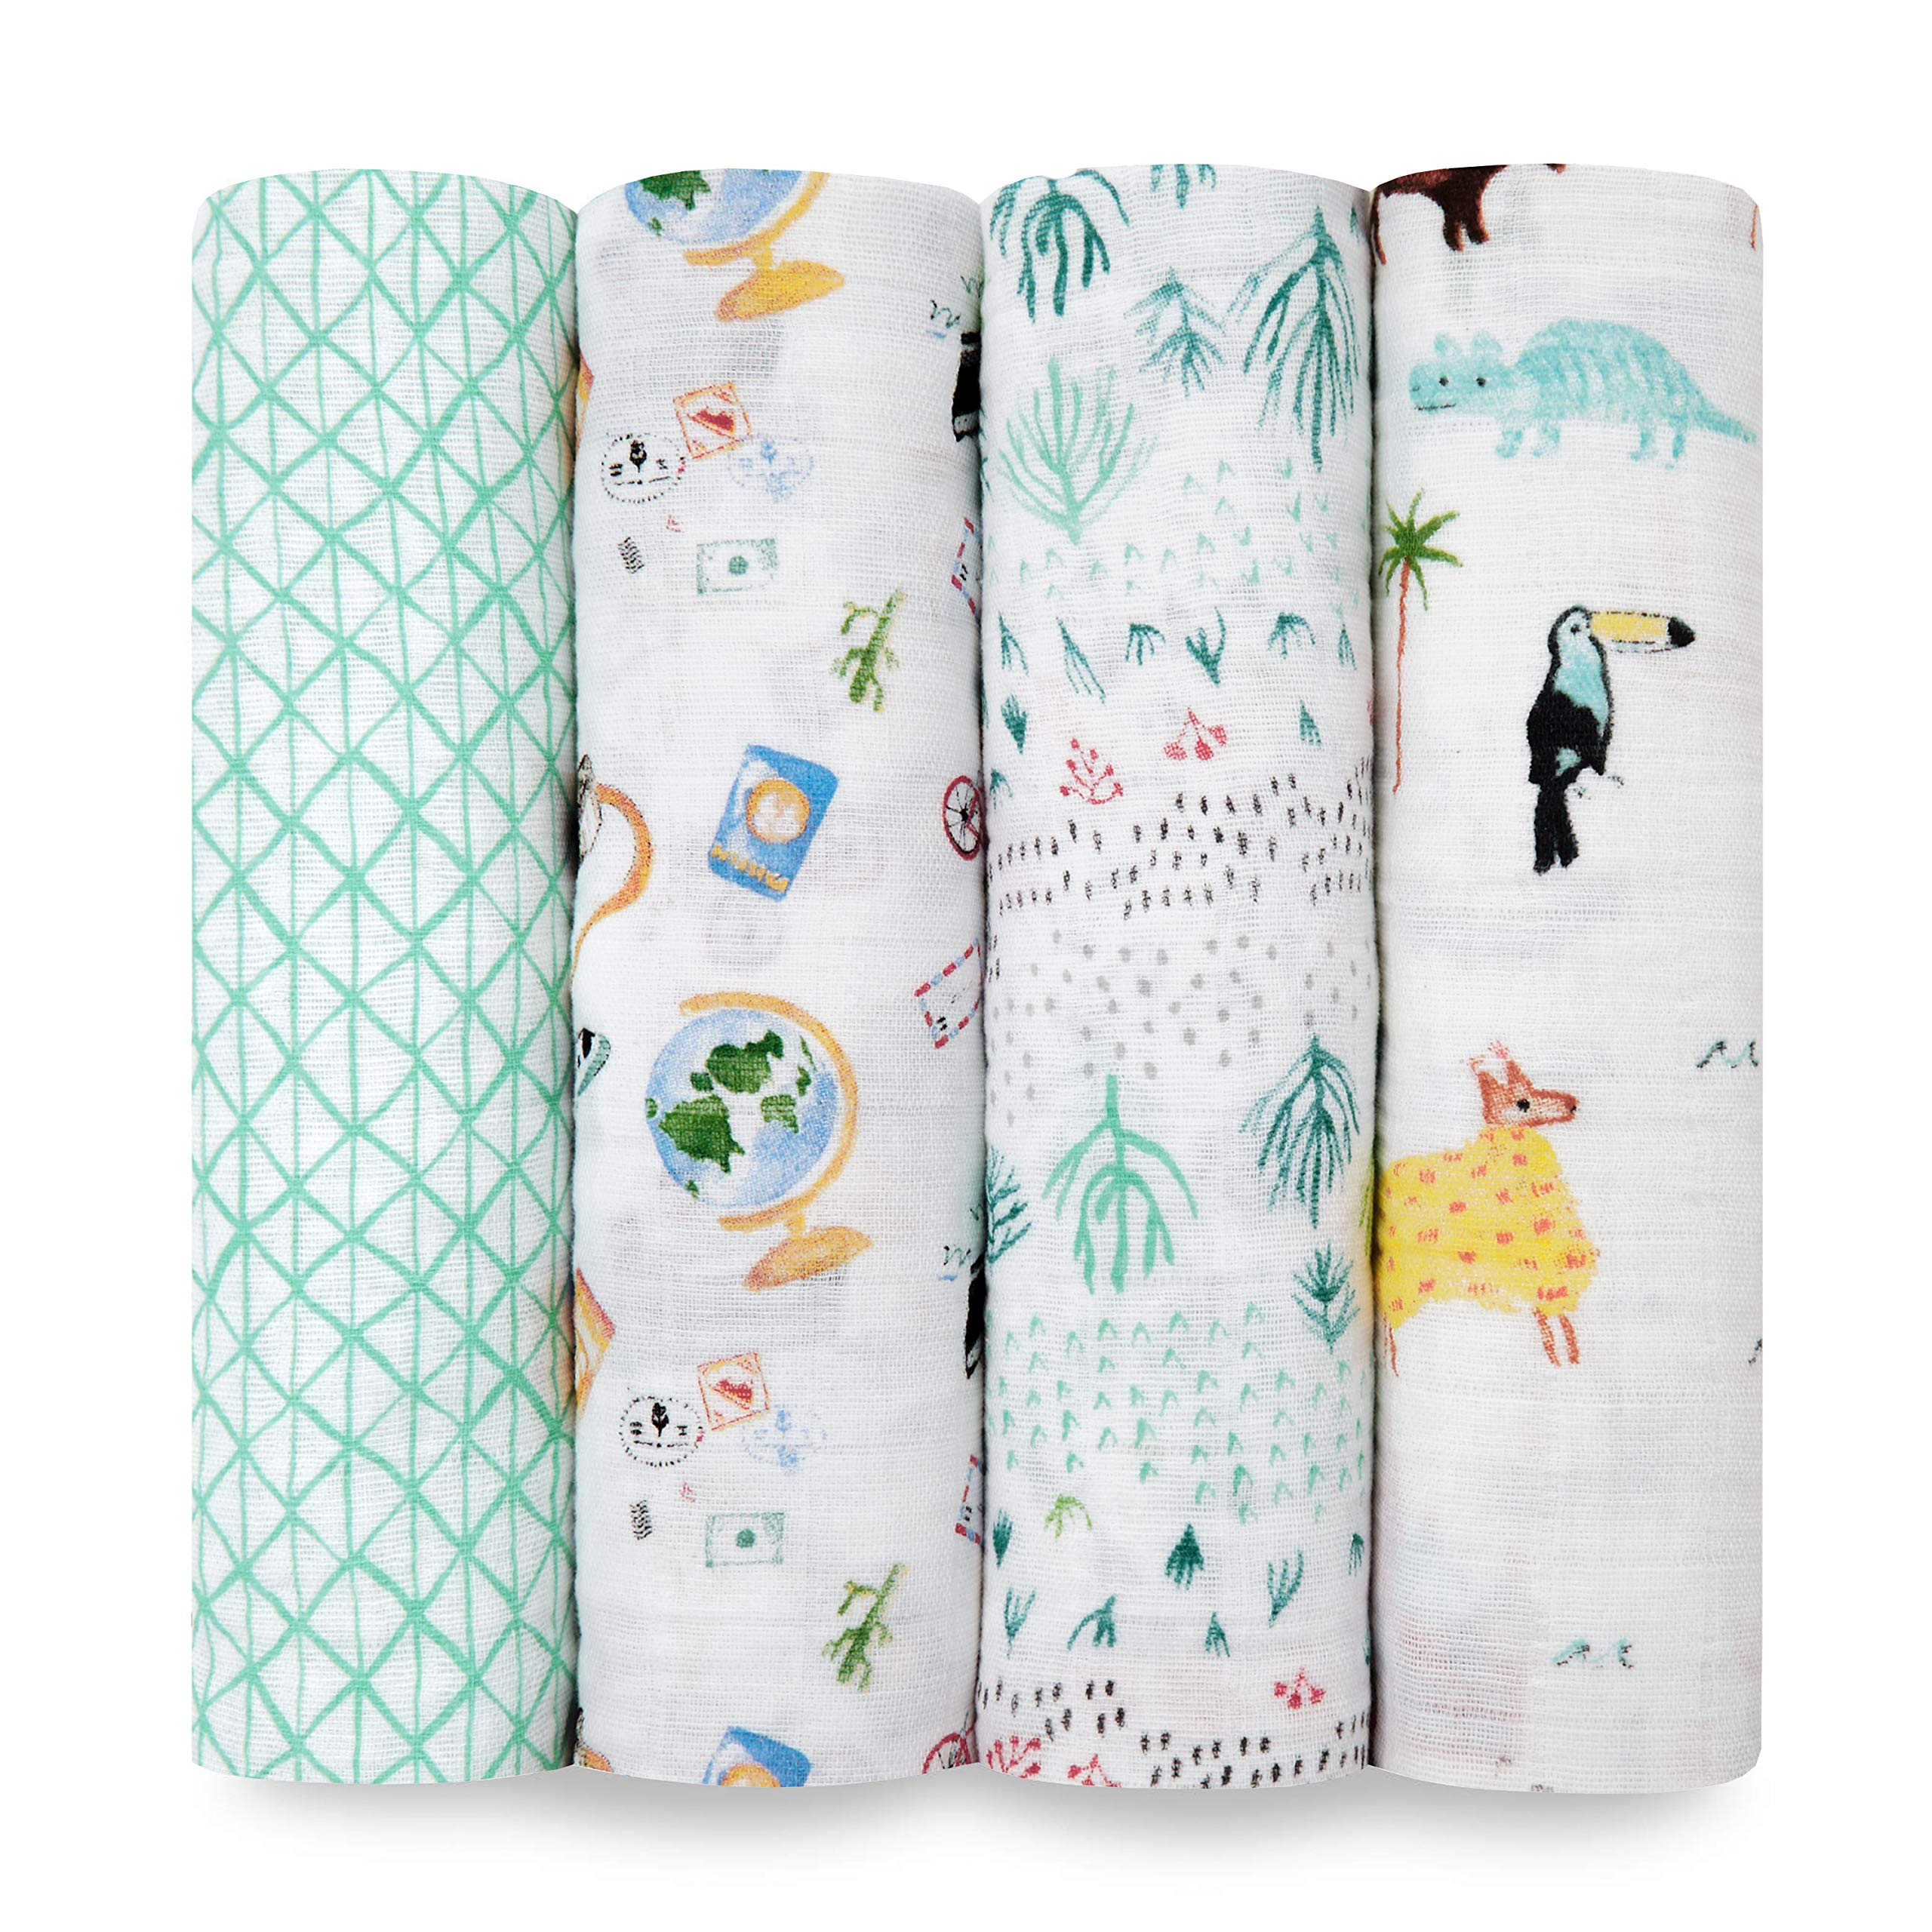 aden + anais Swaddle Blanket | Boutique Muslin Blankets for Girls & Boys | Baby Receiving Swaddles | Ideal Newborn & Infant Swaddling Set | Perfect Shower Gifts, 4 Pack, Around the World by aden + anais